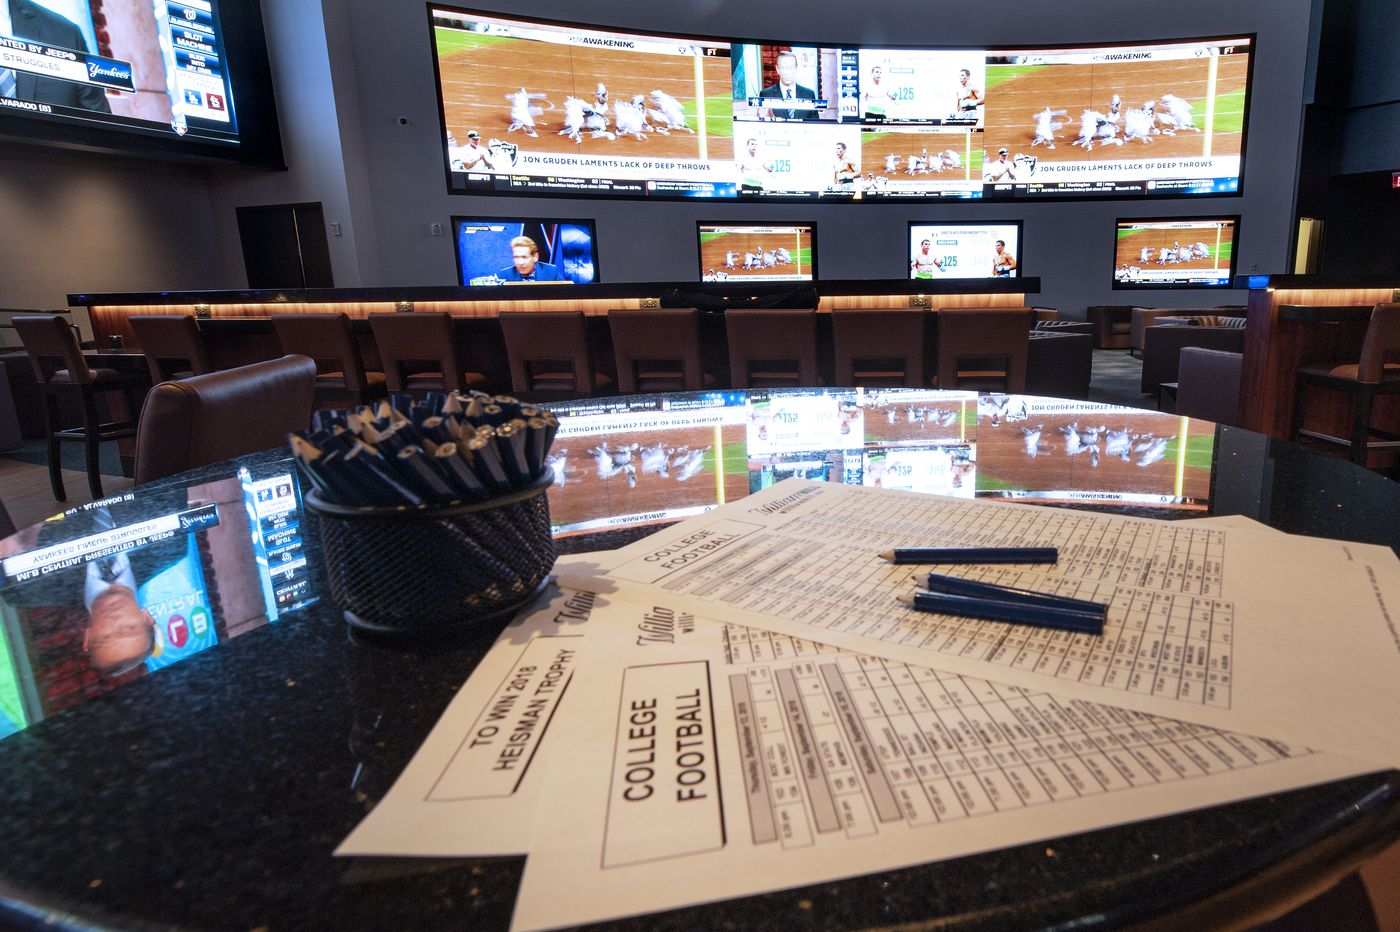 What are the odds? Colleges fear sports betting will lead to cheating.